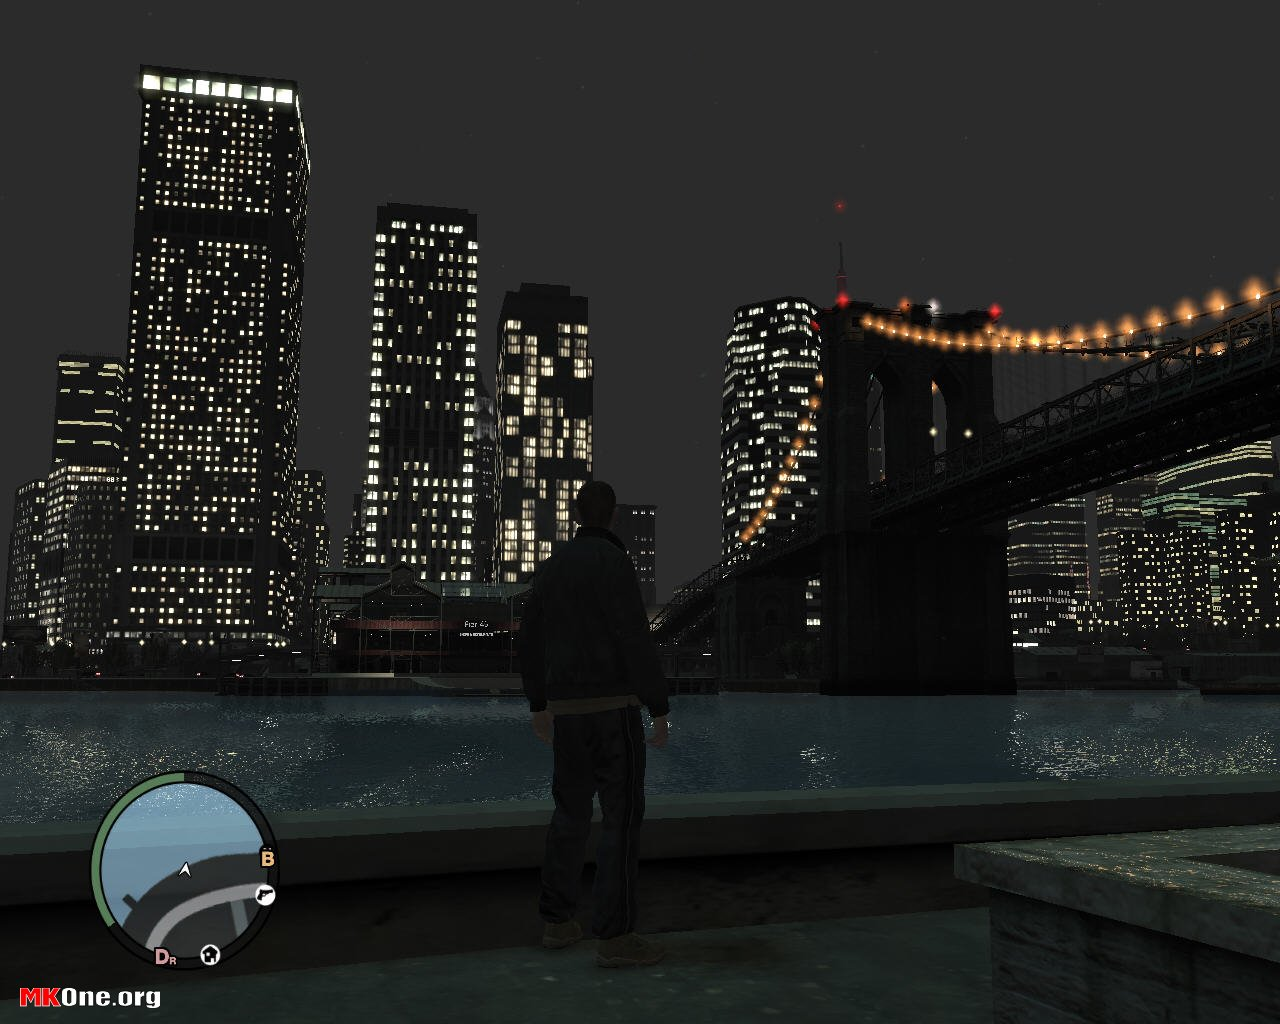 Grand Theft Auto IV Wallpapers   MKOneorg   Game Wallpapers more 1280x1024